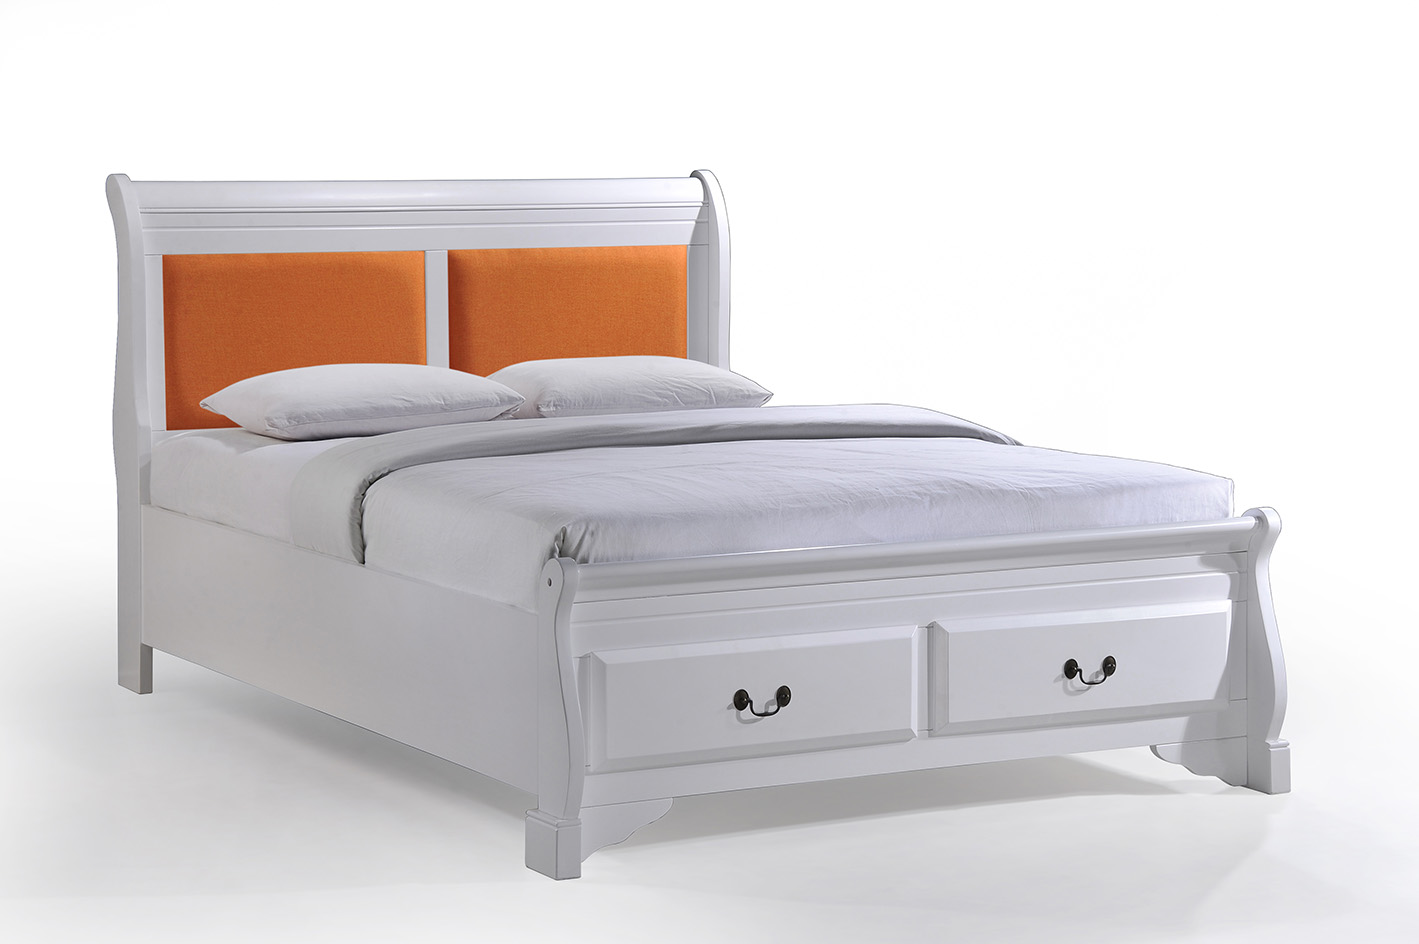 Wooden Bunk Beds Wooden Bunk Bed Supplier Wooden Bunk  : Scopius FB drawer orange from www.afafurniture.com size 1419 x 944 jpeg 146kB